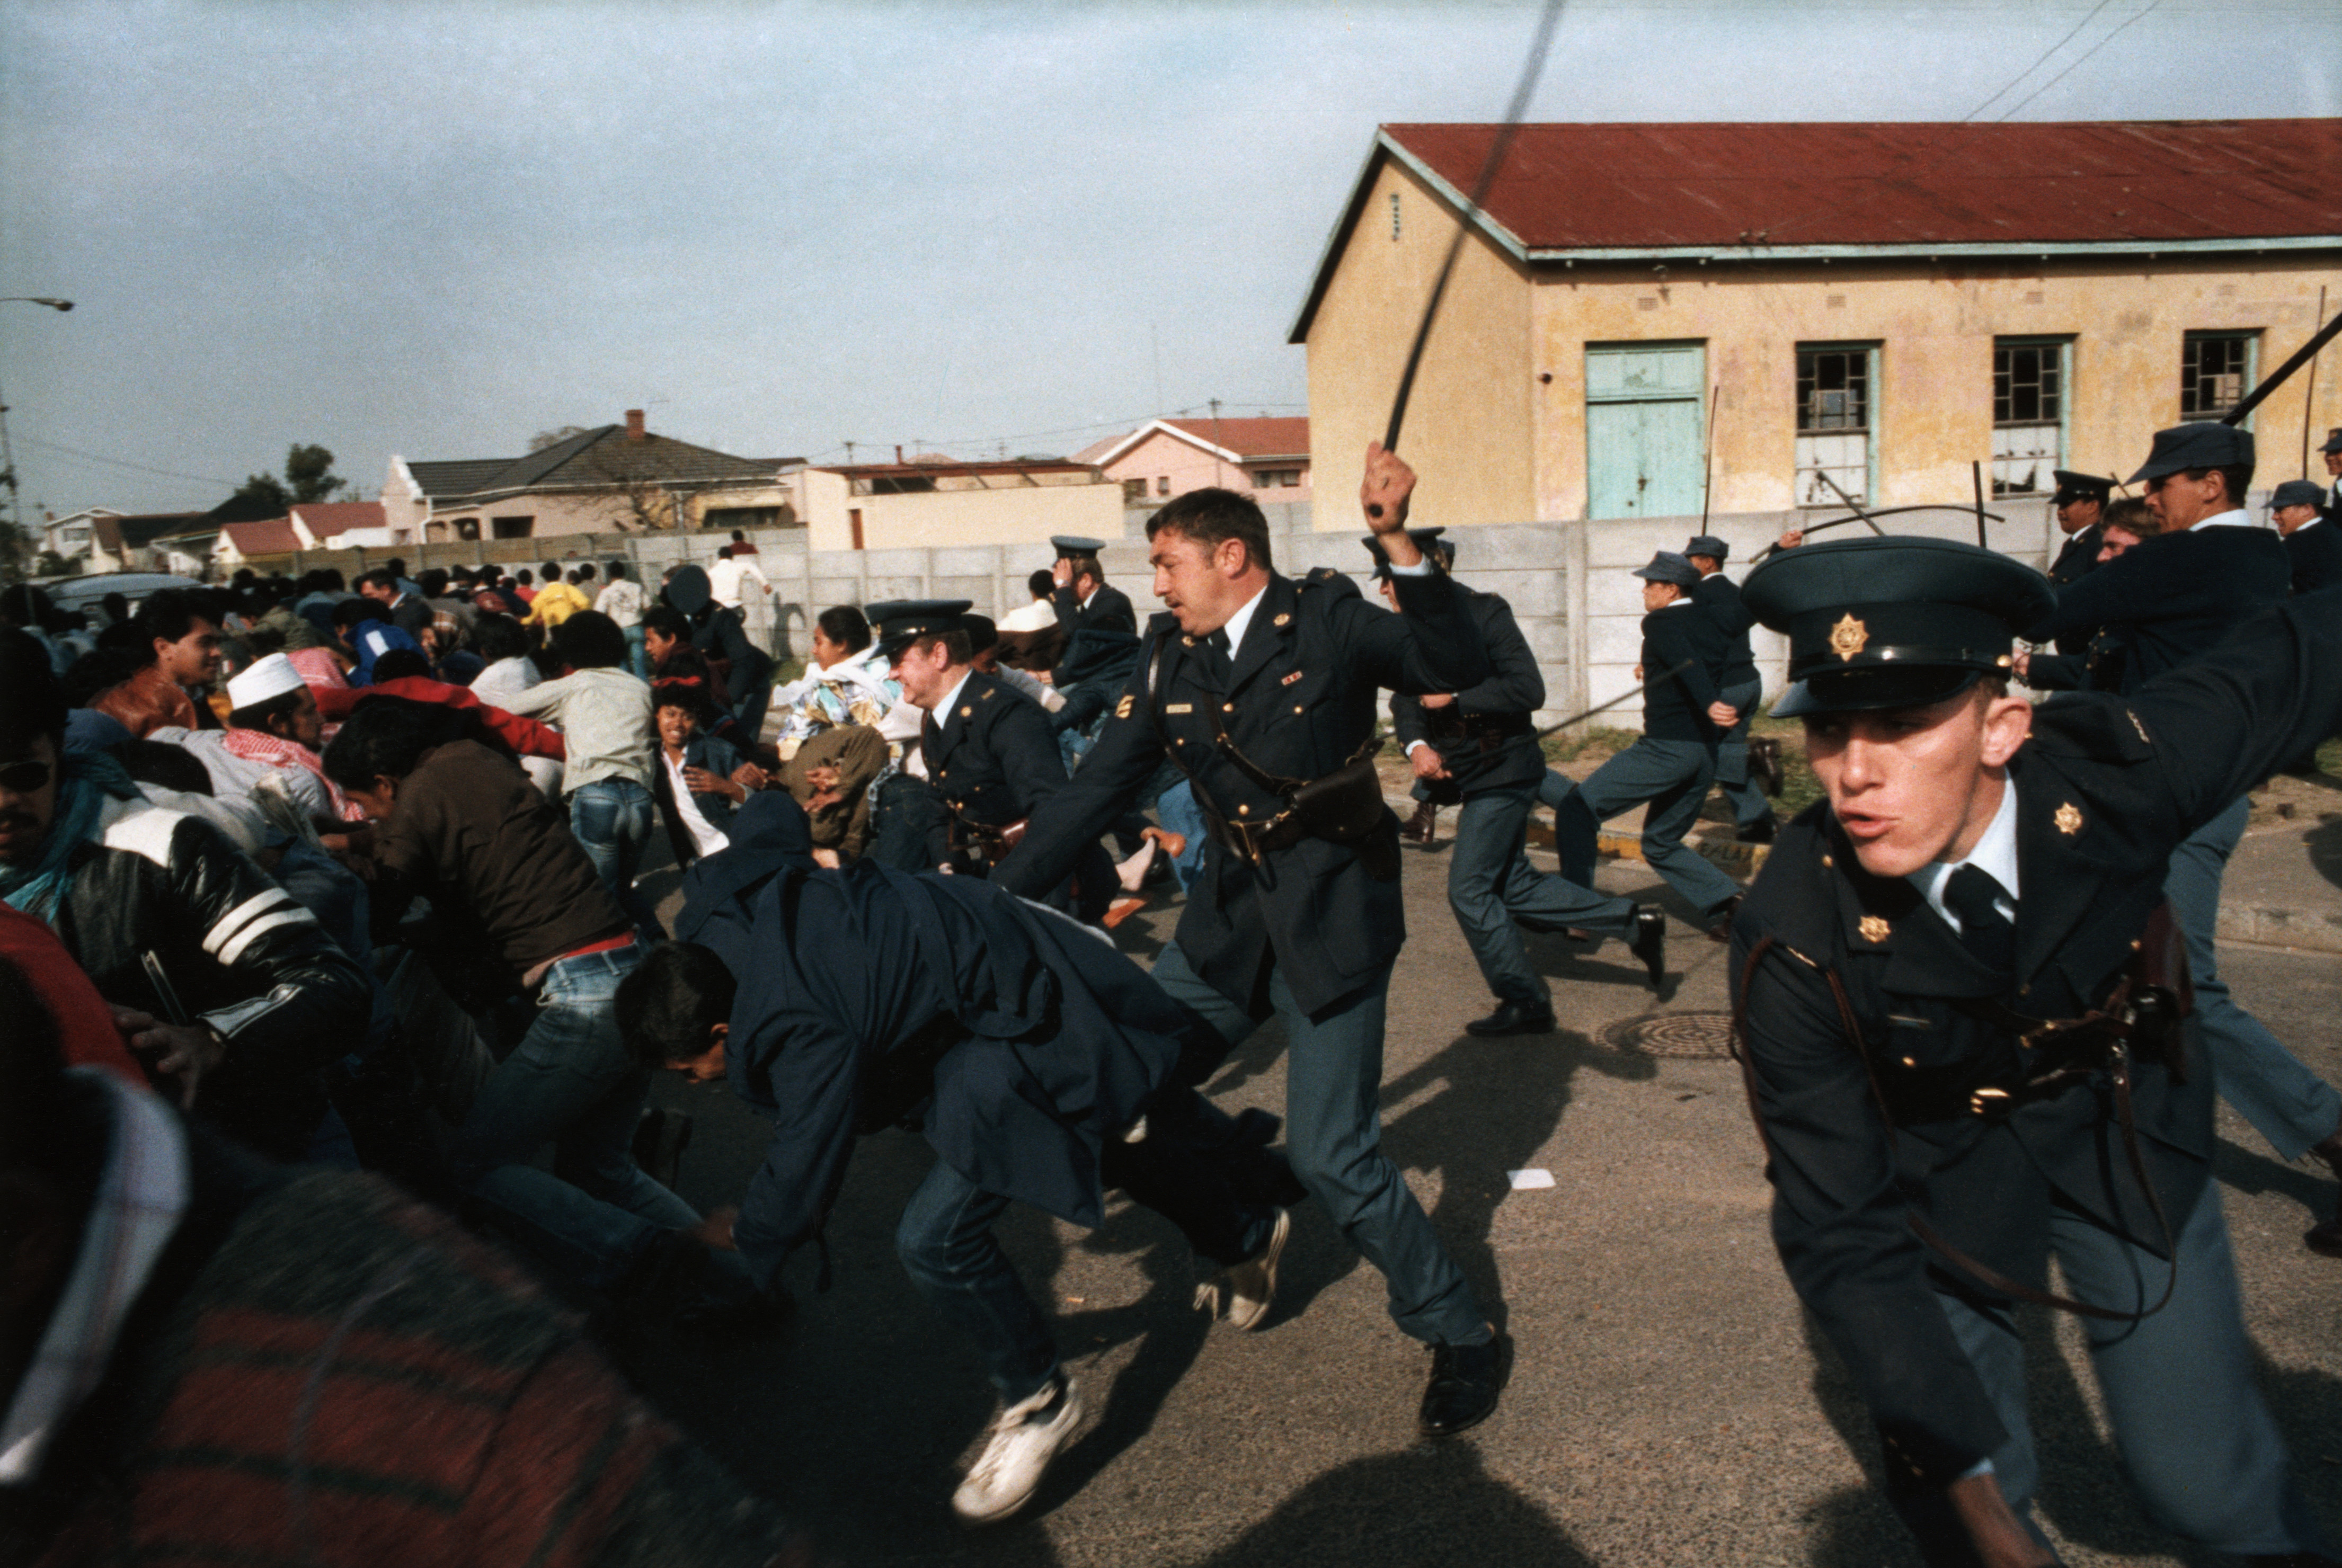 In the Athlone neighborhood of Cape Town, regime police use horsewhips against protesters demonstrating in support of the jailed Mandela. Ruthless crackdowns, mass protests and bouts of insurgent violence across the country's townships captured world attention and generated international support against the apartheid state.